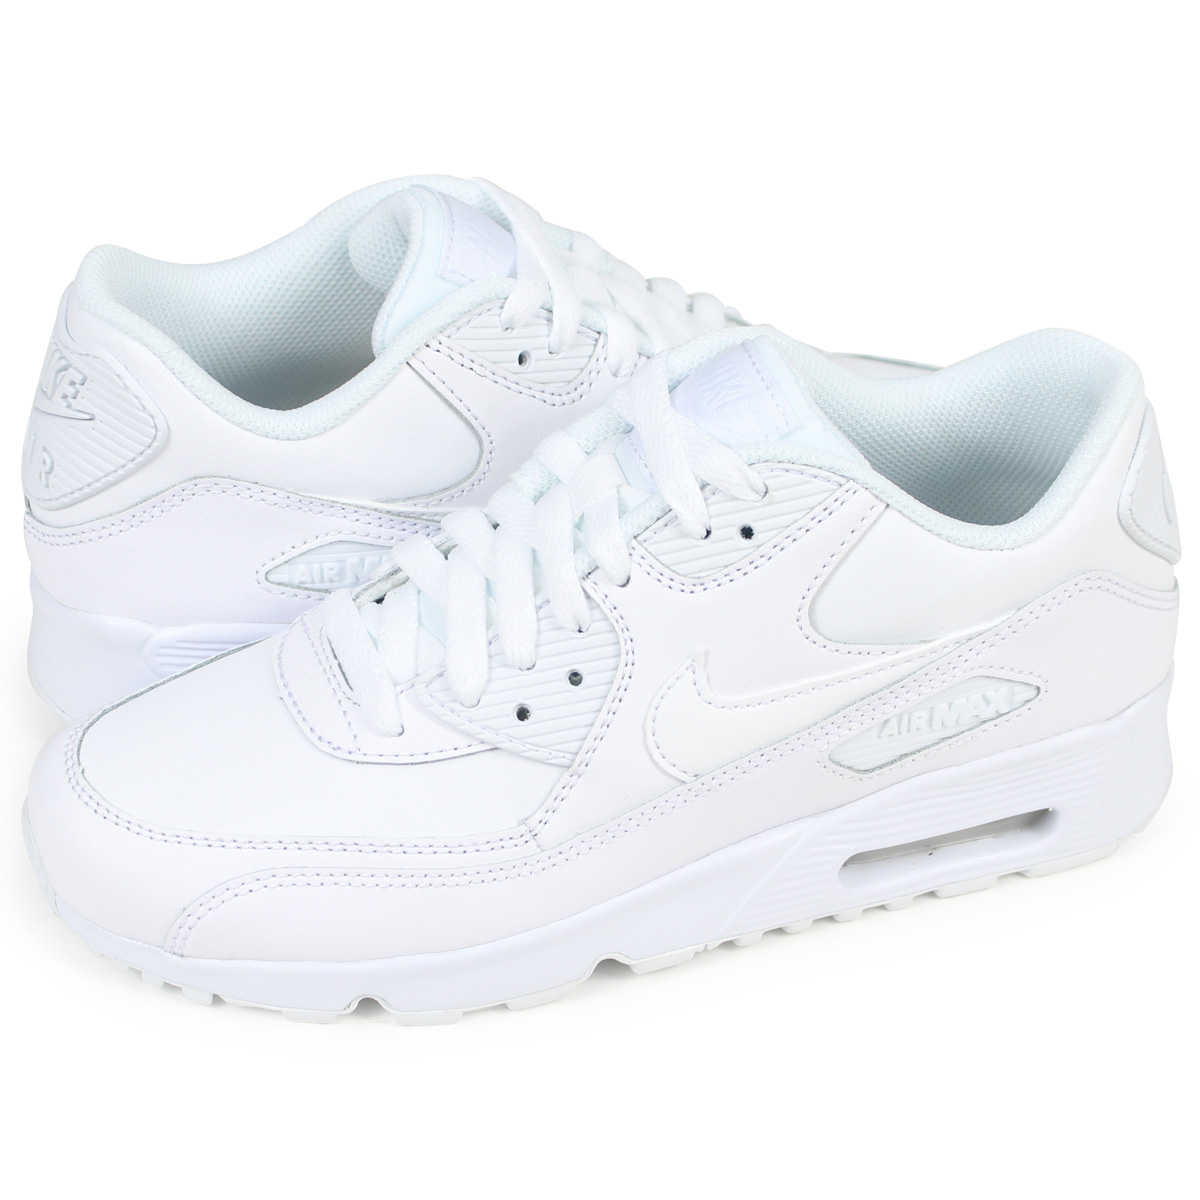 hot sale online 810fe 53022 Nike NIKE Air Max 90 Lady s sneakers AIR MAX 90 LEATHER GS 833,412-100 white  ...